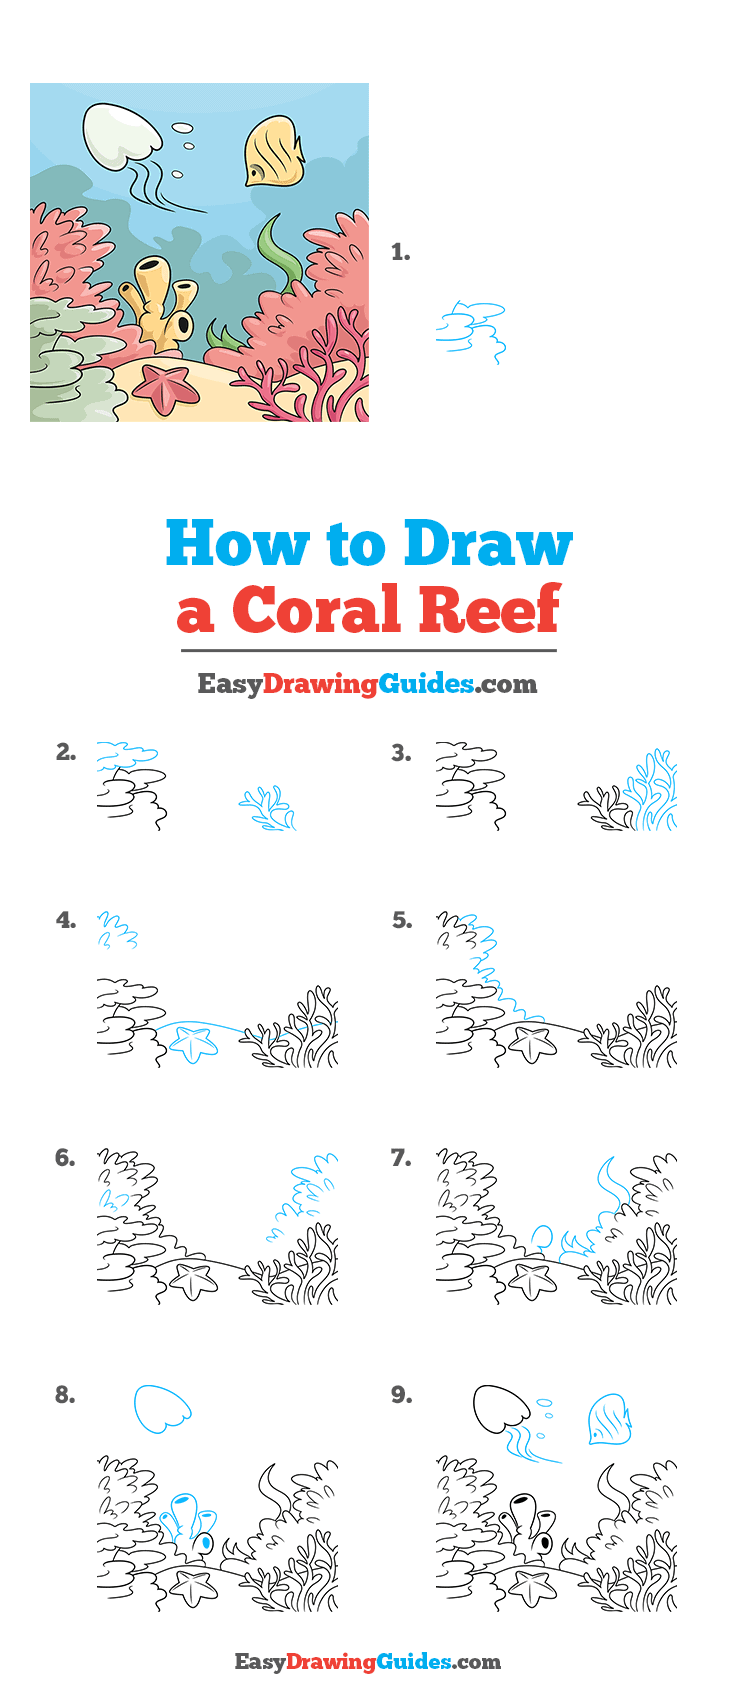 How to Draw Coral Reef